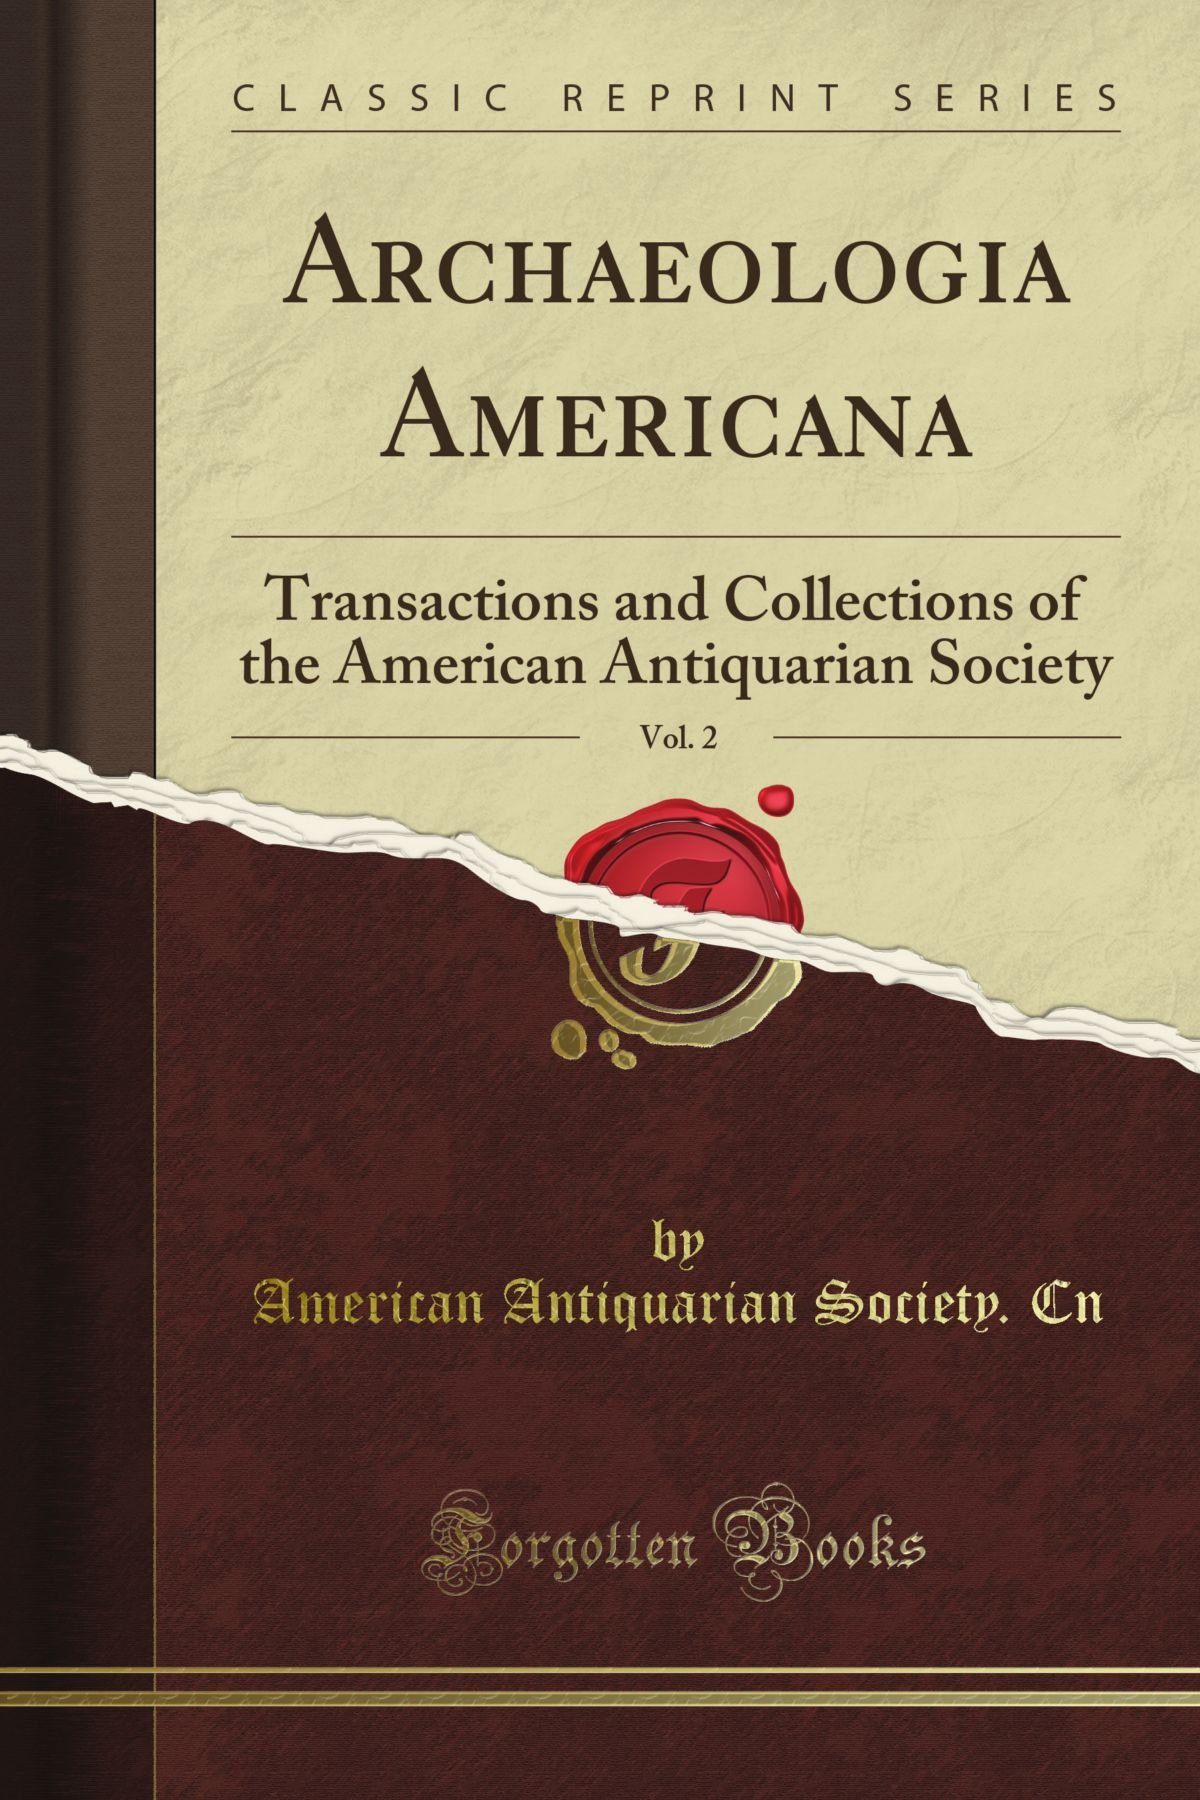 Archaeologia Americana: Transactions and Collections of the American Antiquarian Society, Vol. 2 (Classic Reprint) PDF